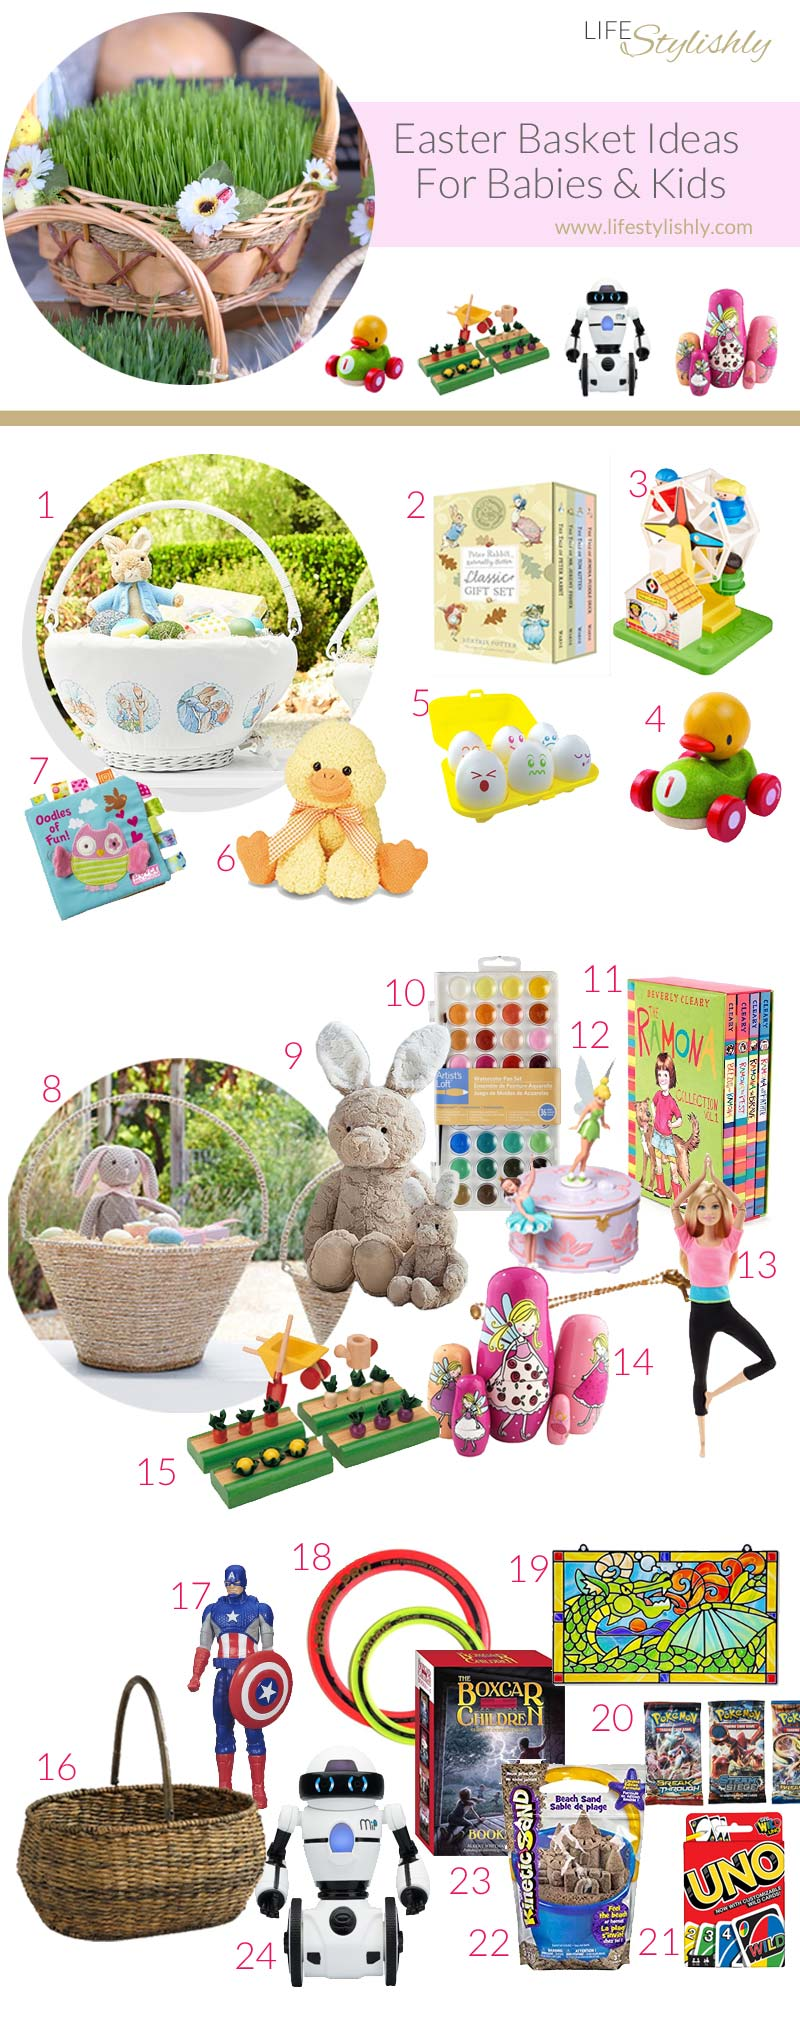 24 easter basket ideas for babies kids life stylishly 24 easter basket ideas for kids and babies negle Gallery